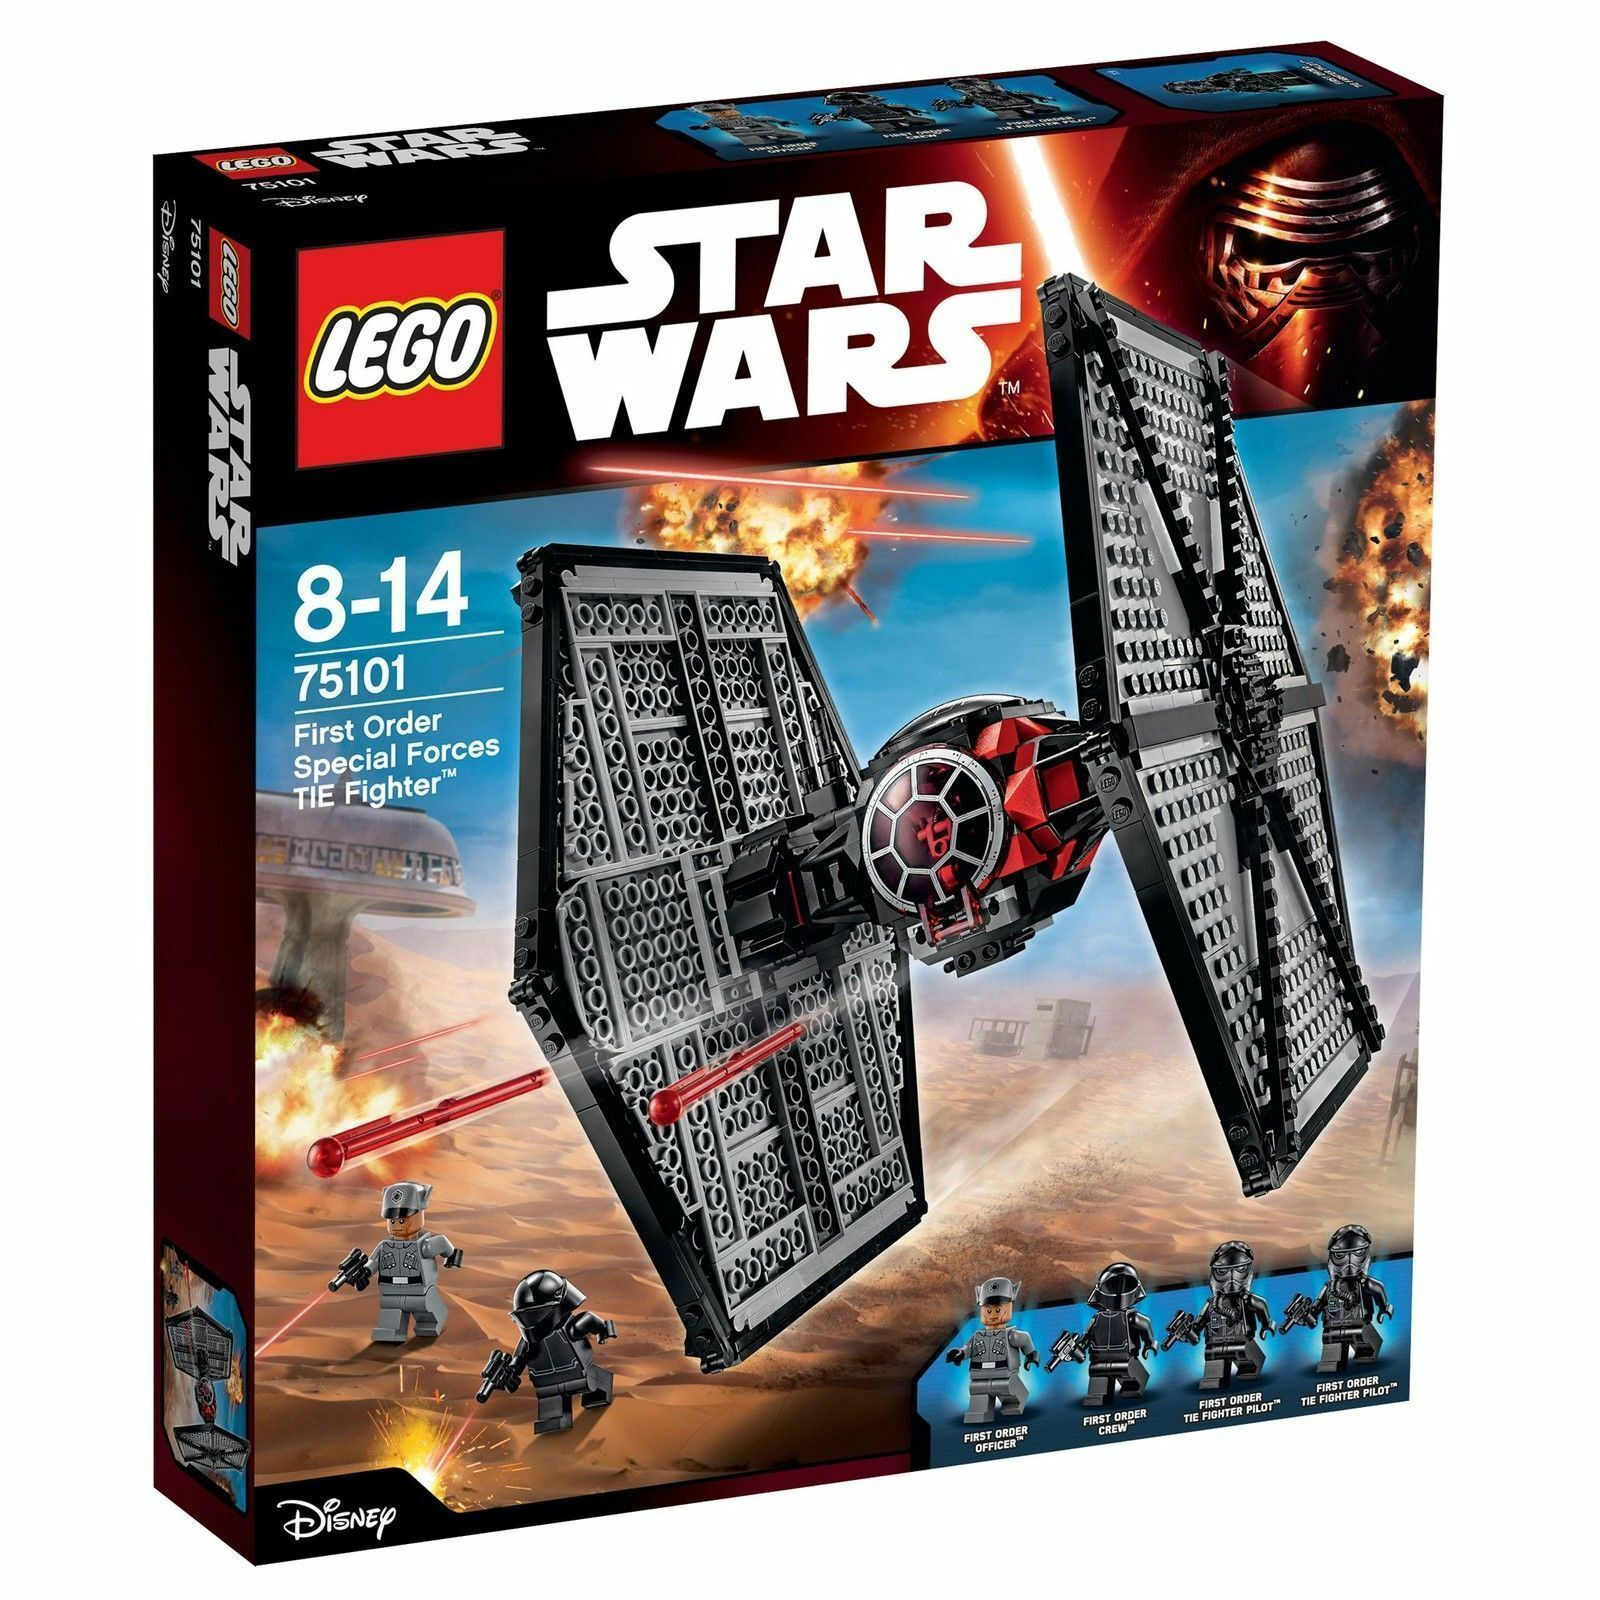 LEGO Star Wars First Order Special Forces TIE fighter (75101)NEW BUT WEAR ON BOX